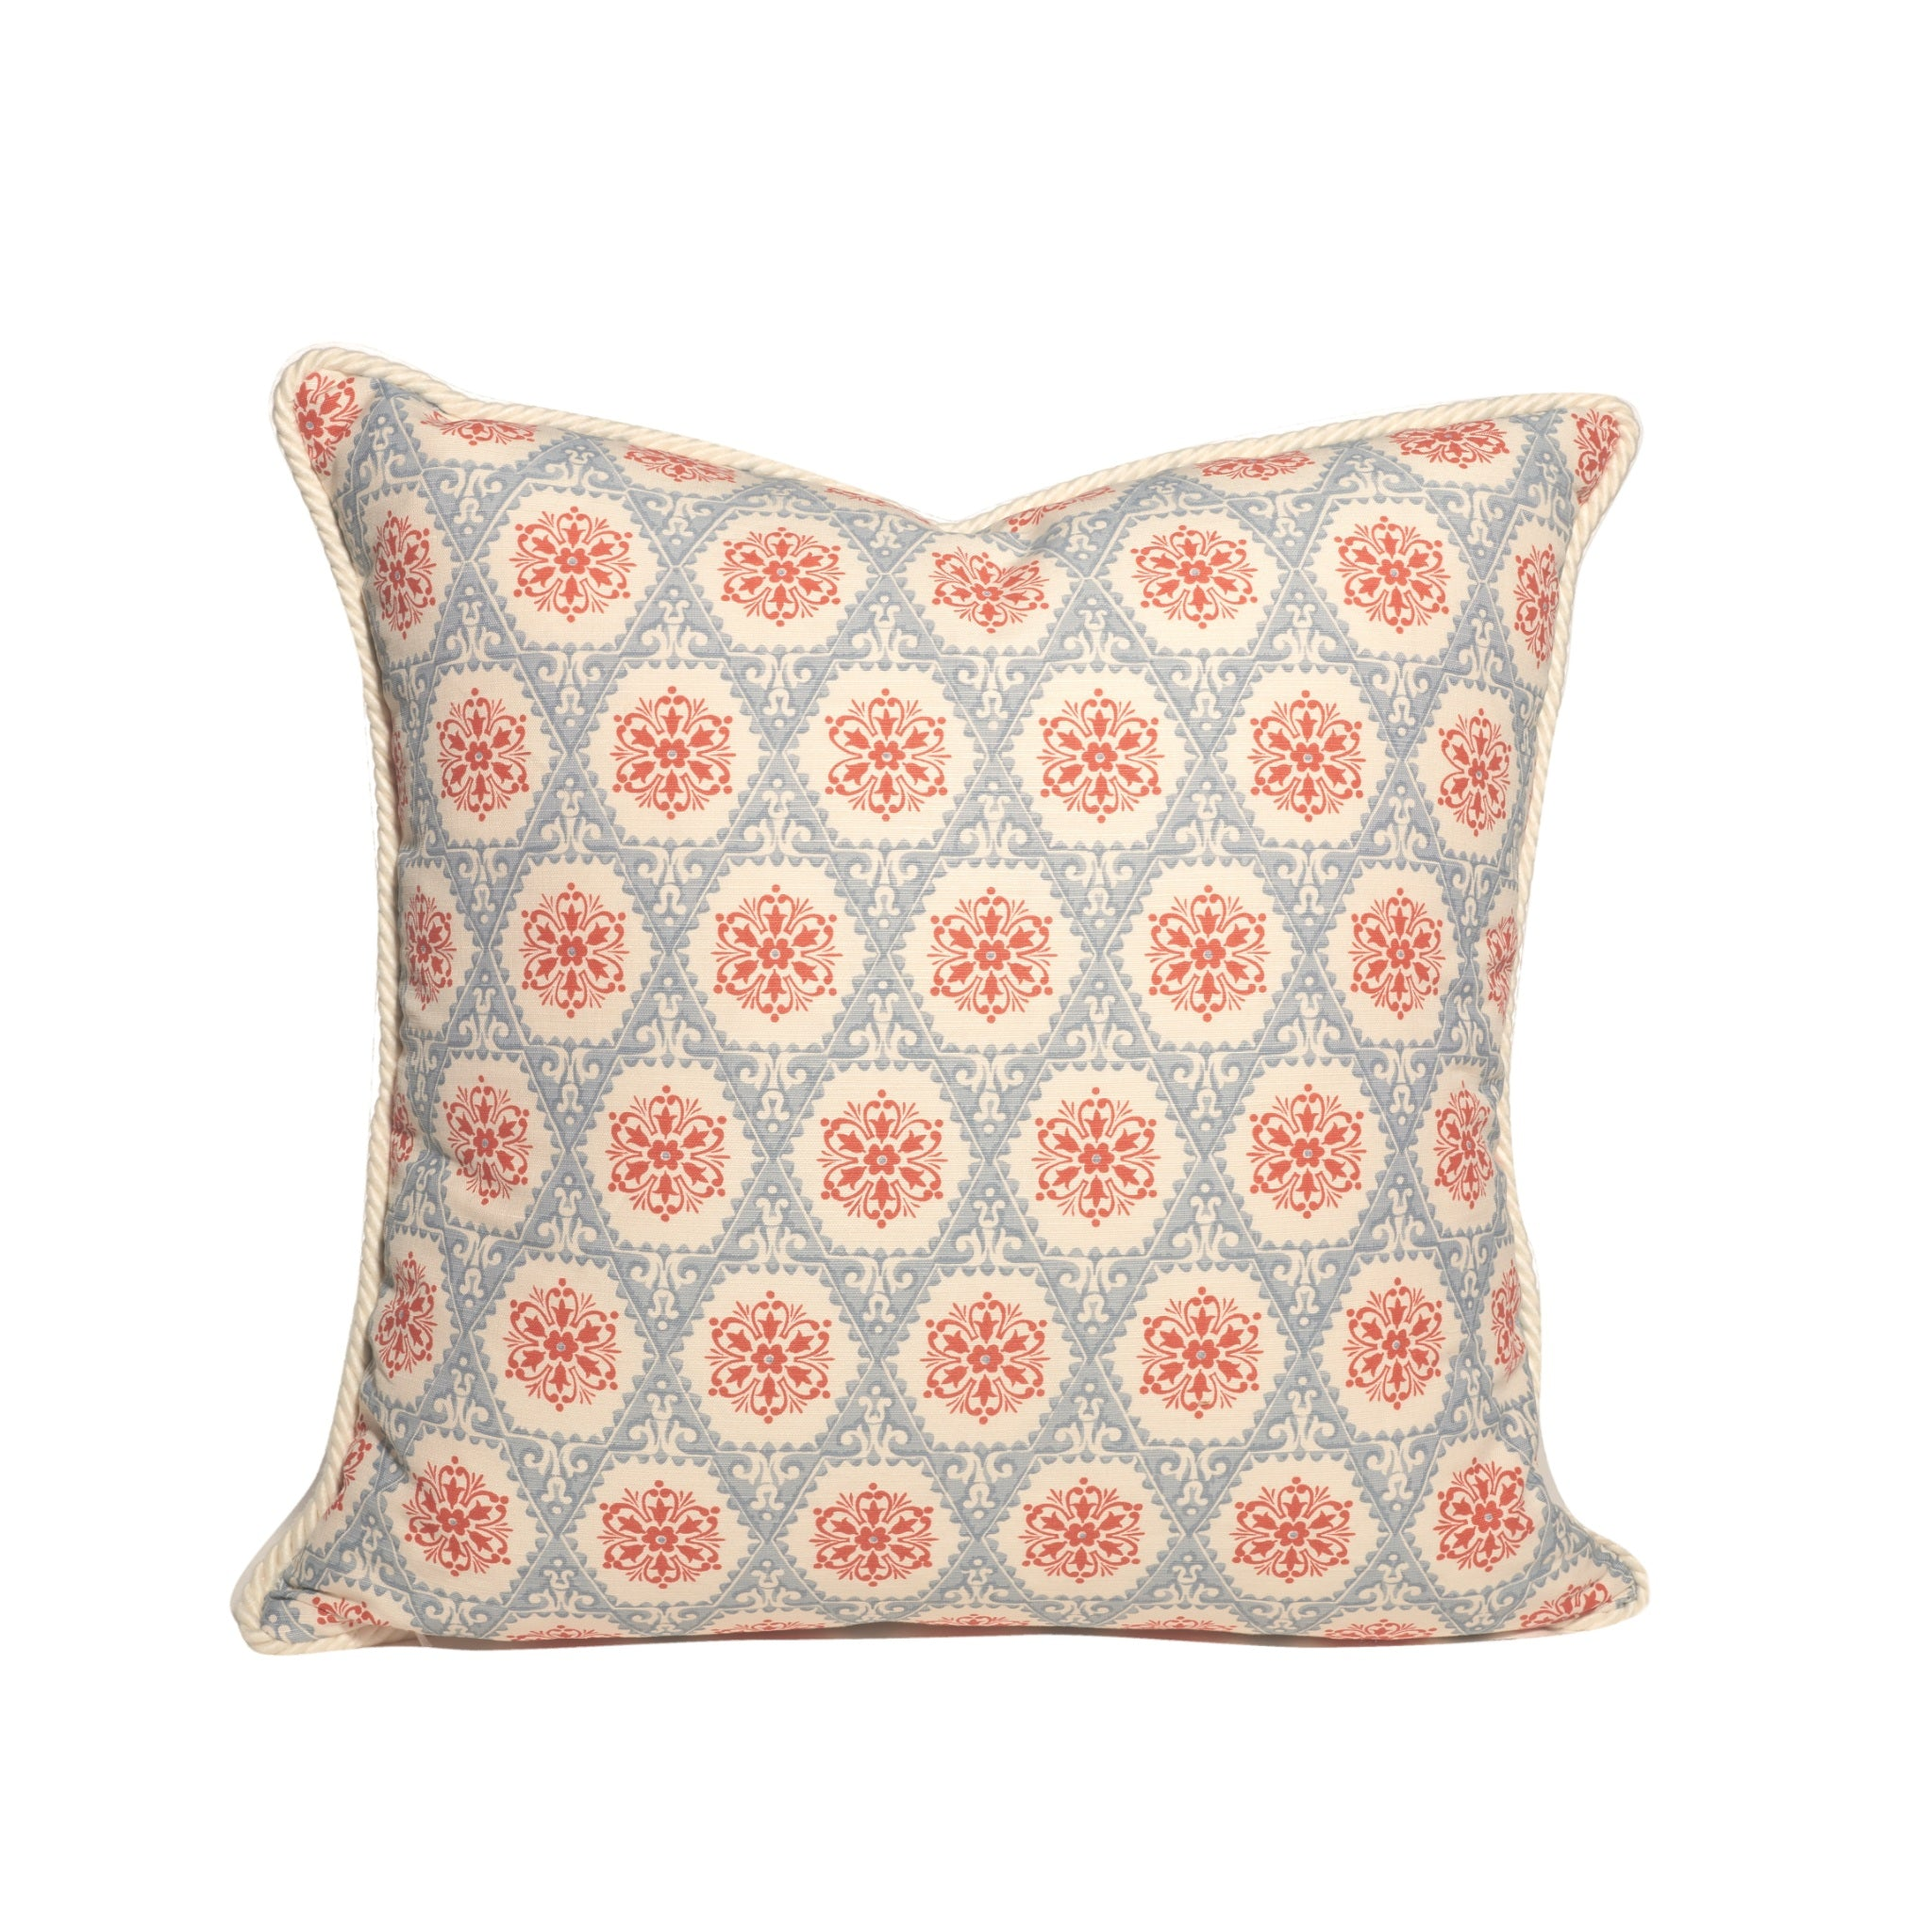 Red White and Blue Geometric Pattern Throw Pillows